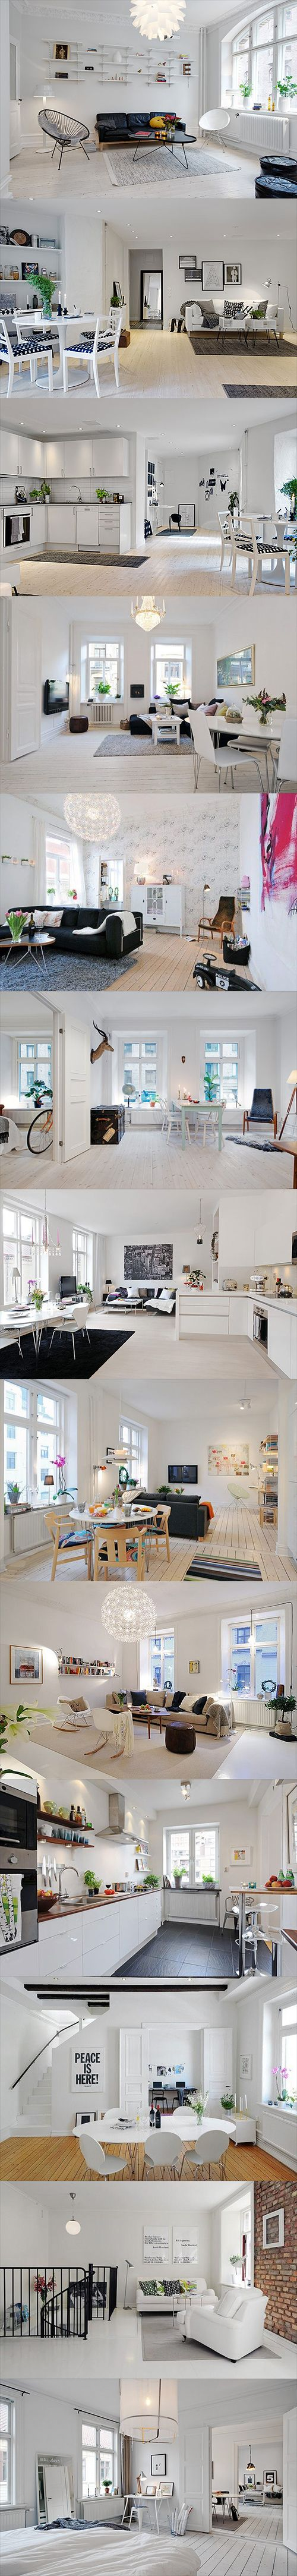 143 best maison inspiration dà co images on pinterest home